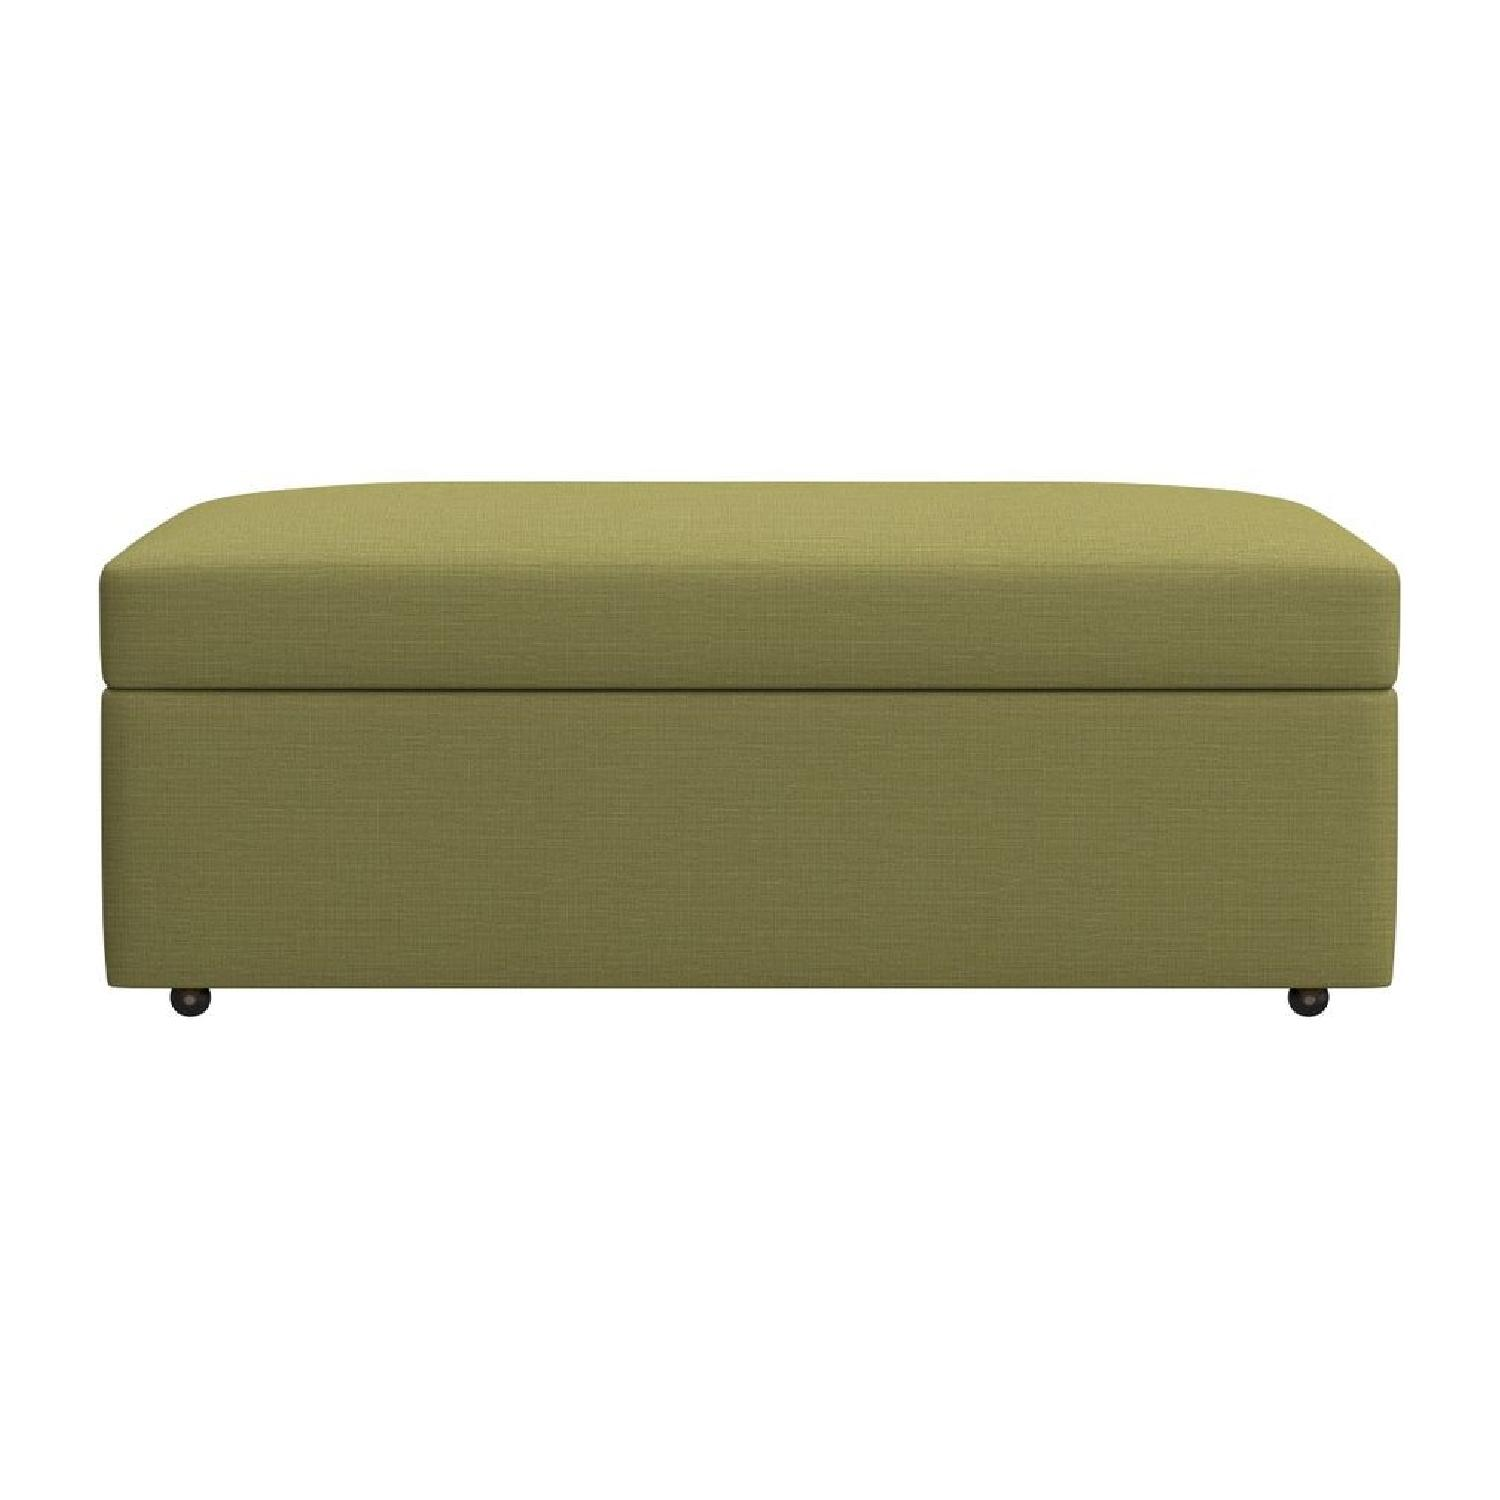 Crate & Barrel Lounge II Apartment Sofa & Ottoman-15